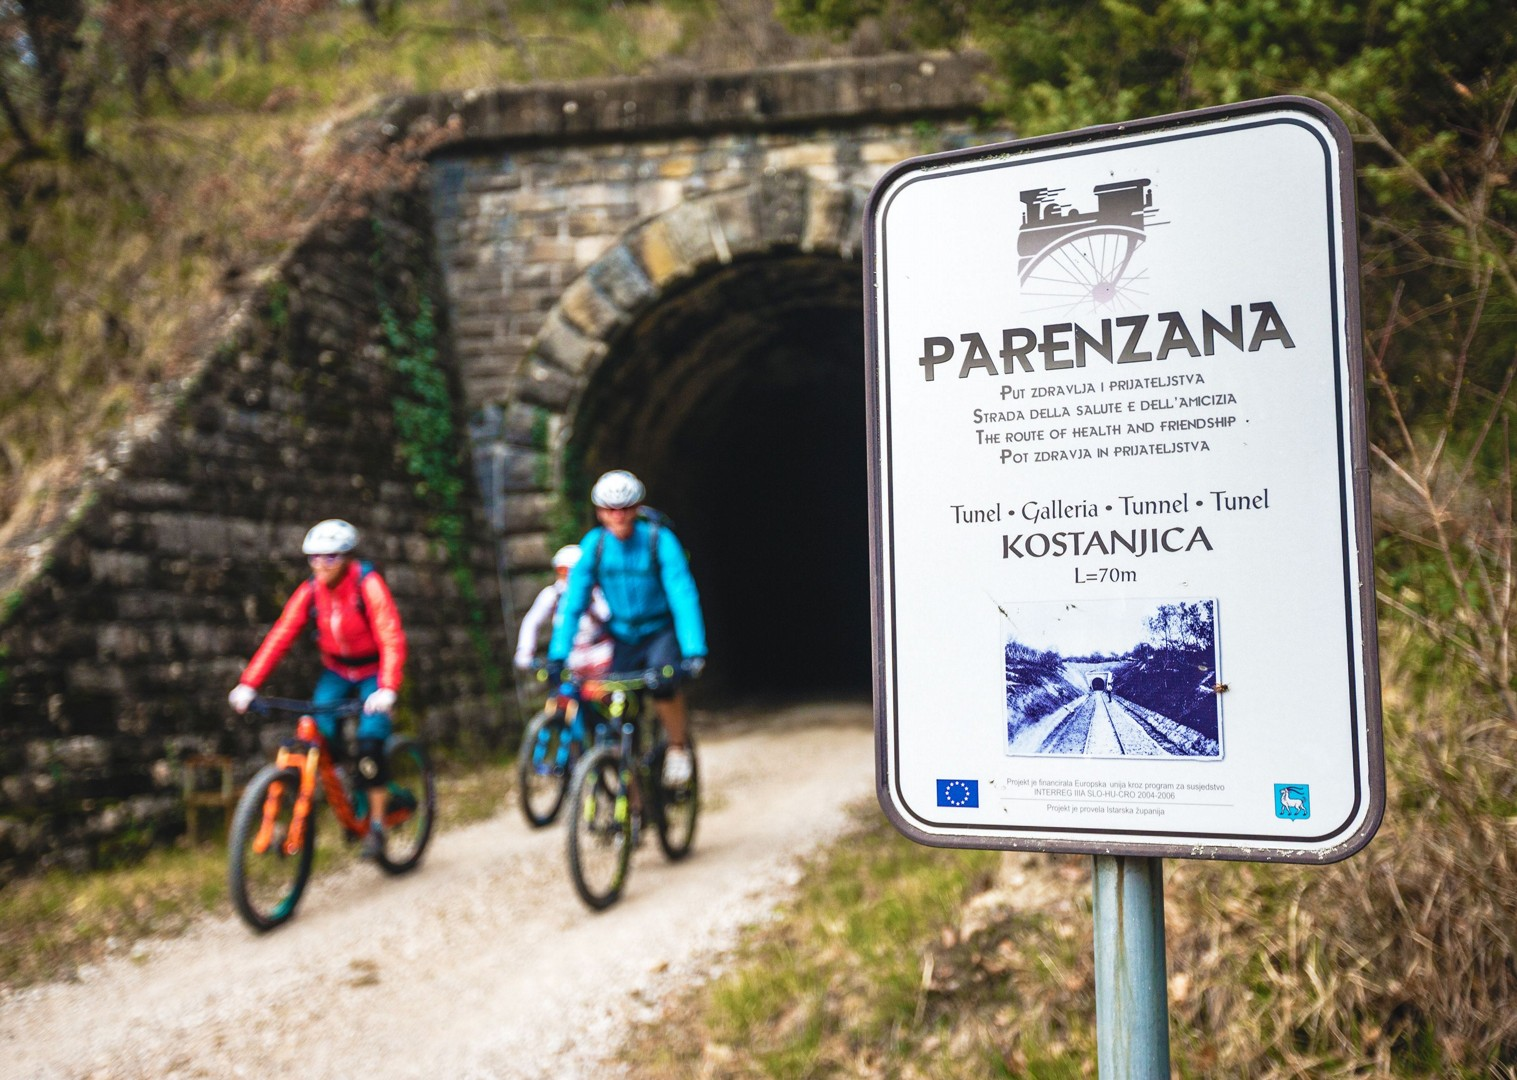 parenzana-mountain-biking-croatia-terra-magica-skedaddle-cycling-holiday.jpg - Croatia - Terra Magica - Mountain Biking